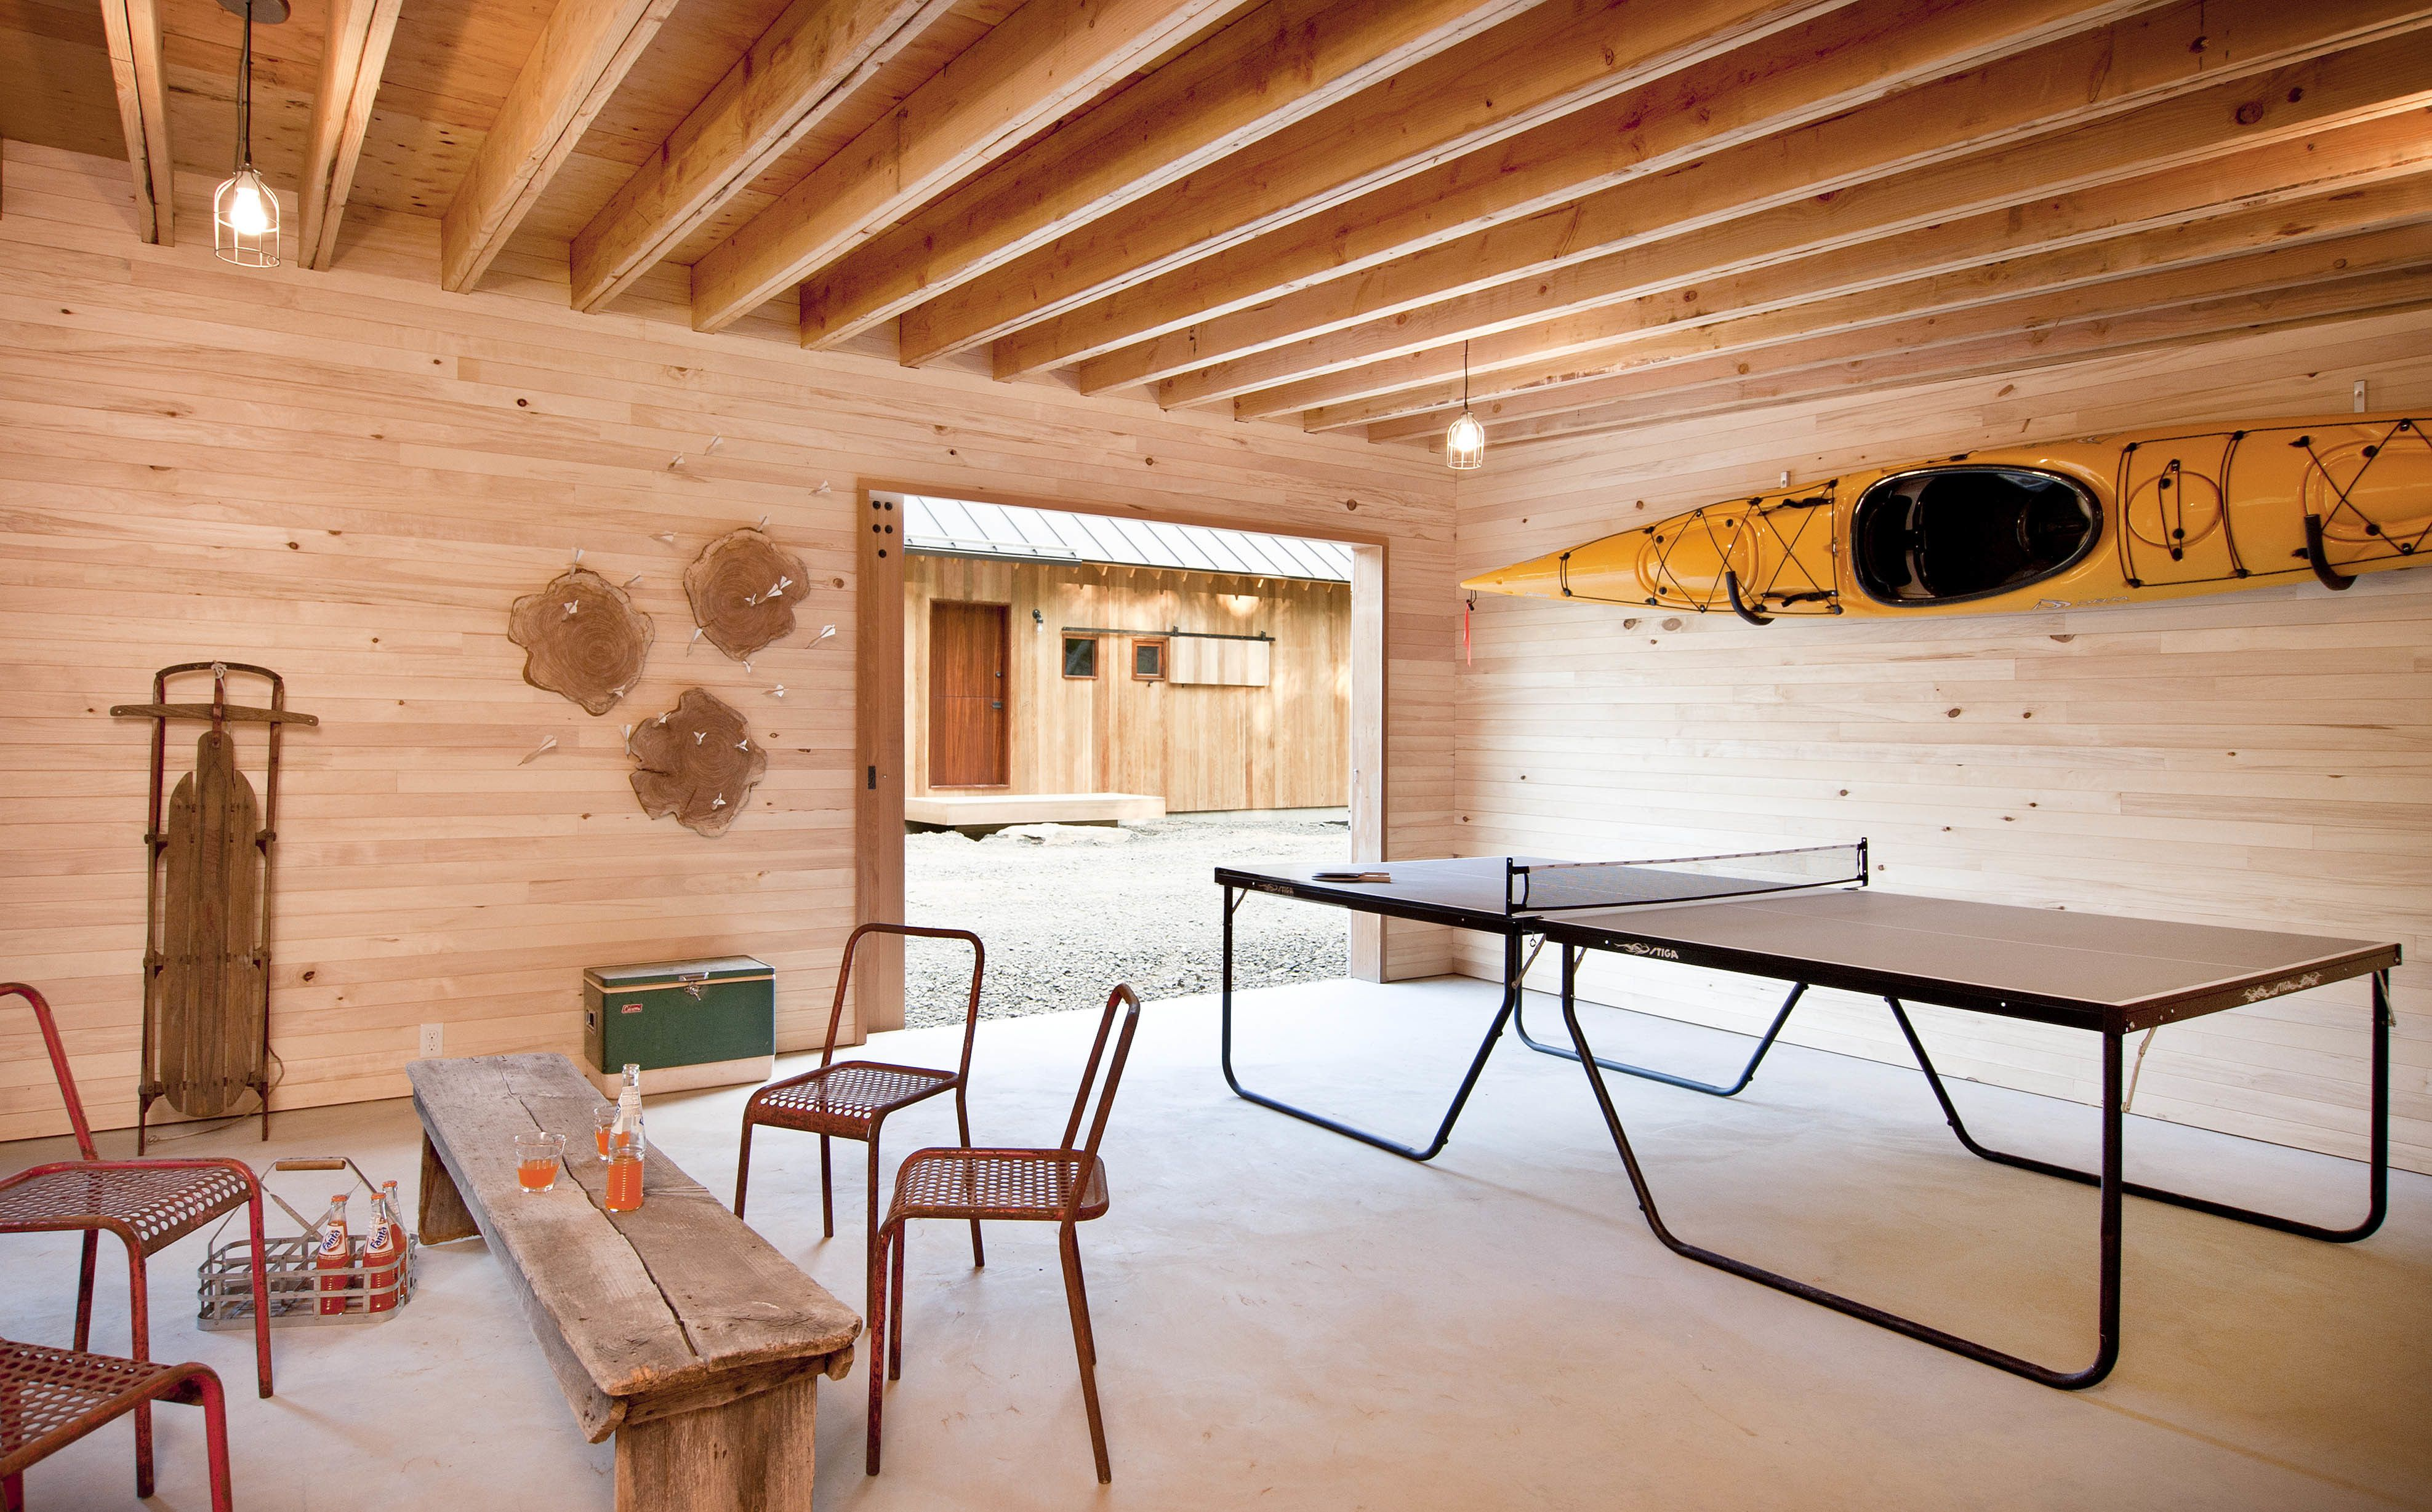 """The Langs use an outbuilding as a rec room of sorts. """"We call that the Grace Studio,"""" Lang says. """"It's designed so a car can pull in there, but we use it as more of a rec room and work space."""""""